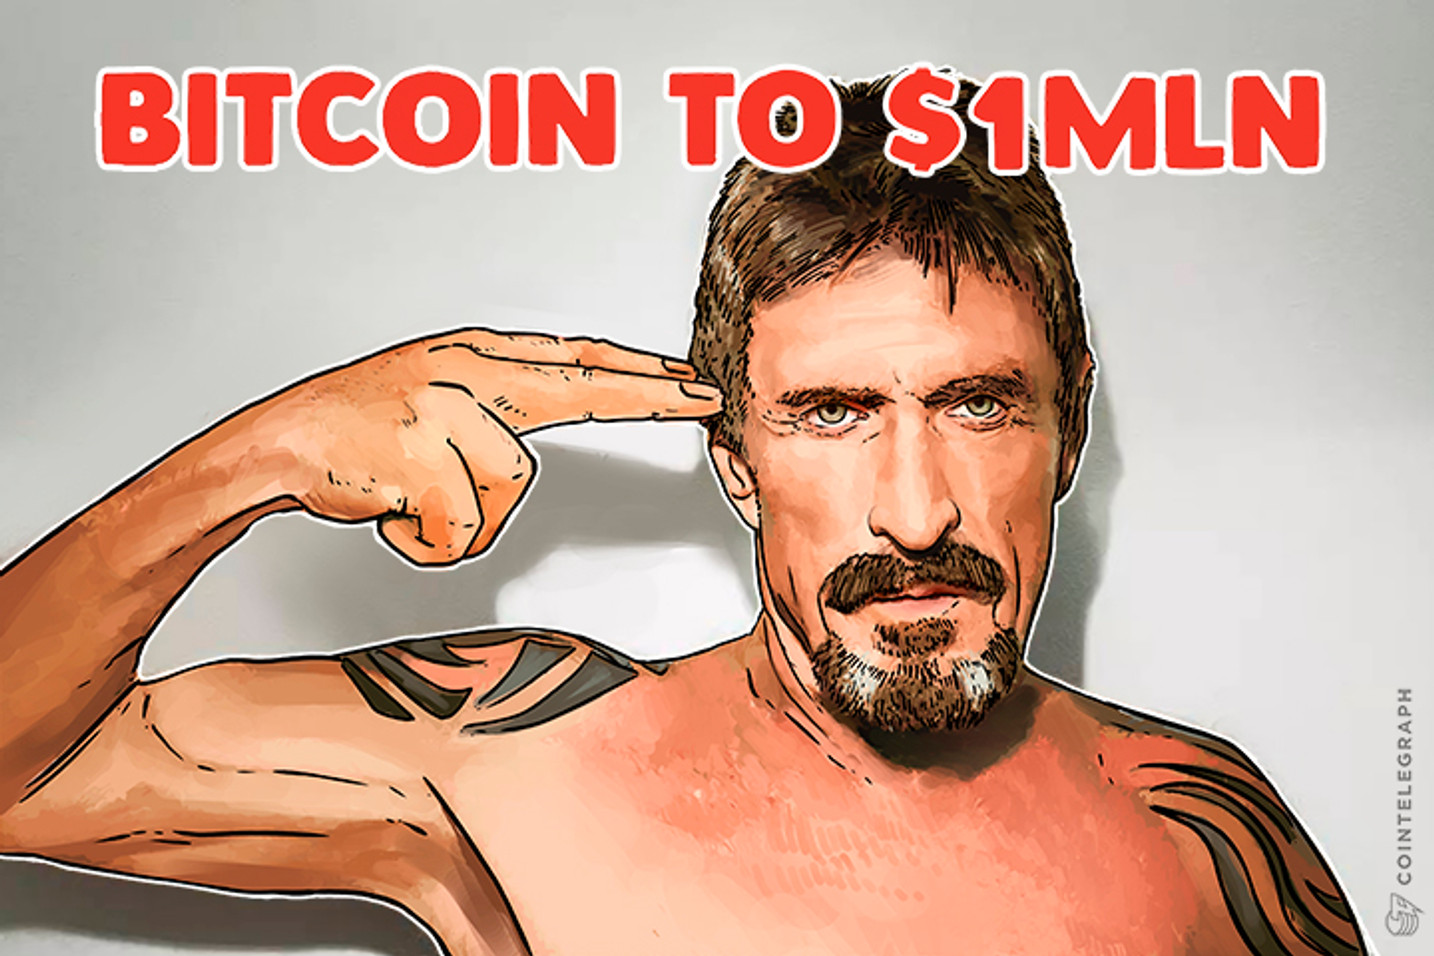 John McAfee Doubles Down, Predicts $1 Mln BTC, Bets His D**k On It